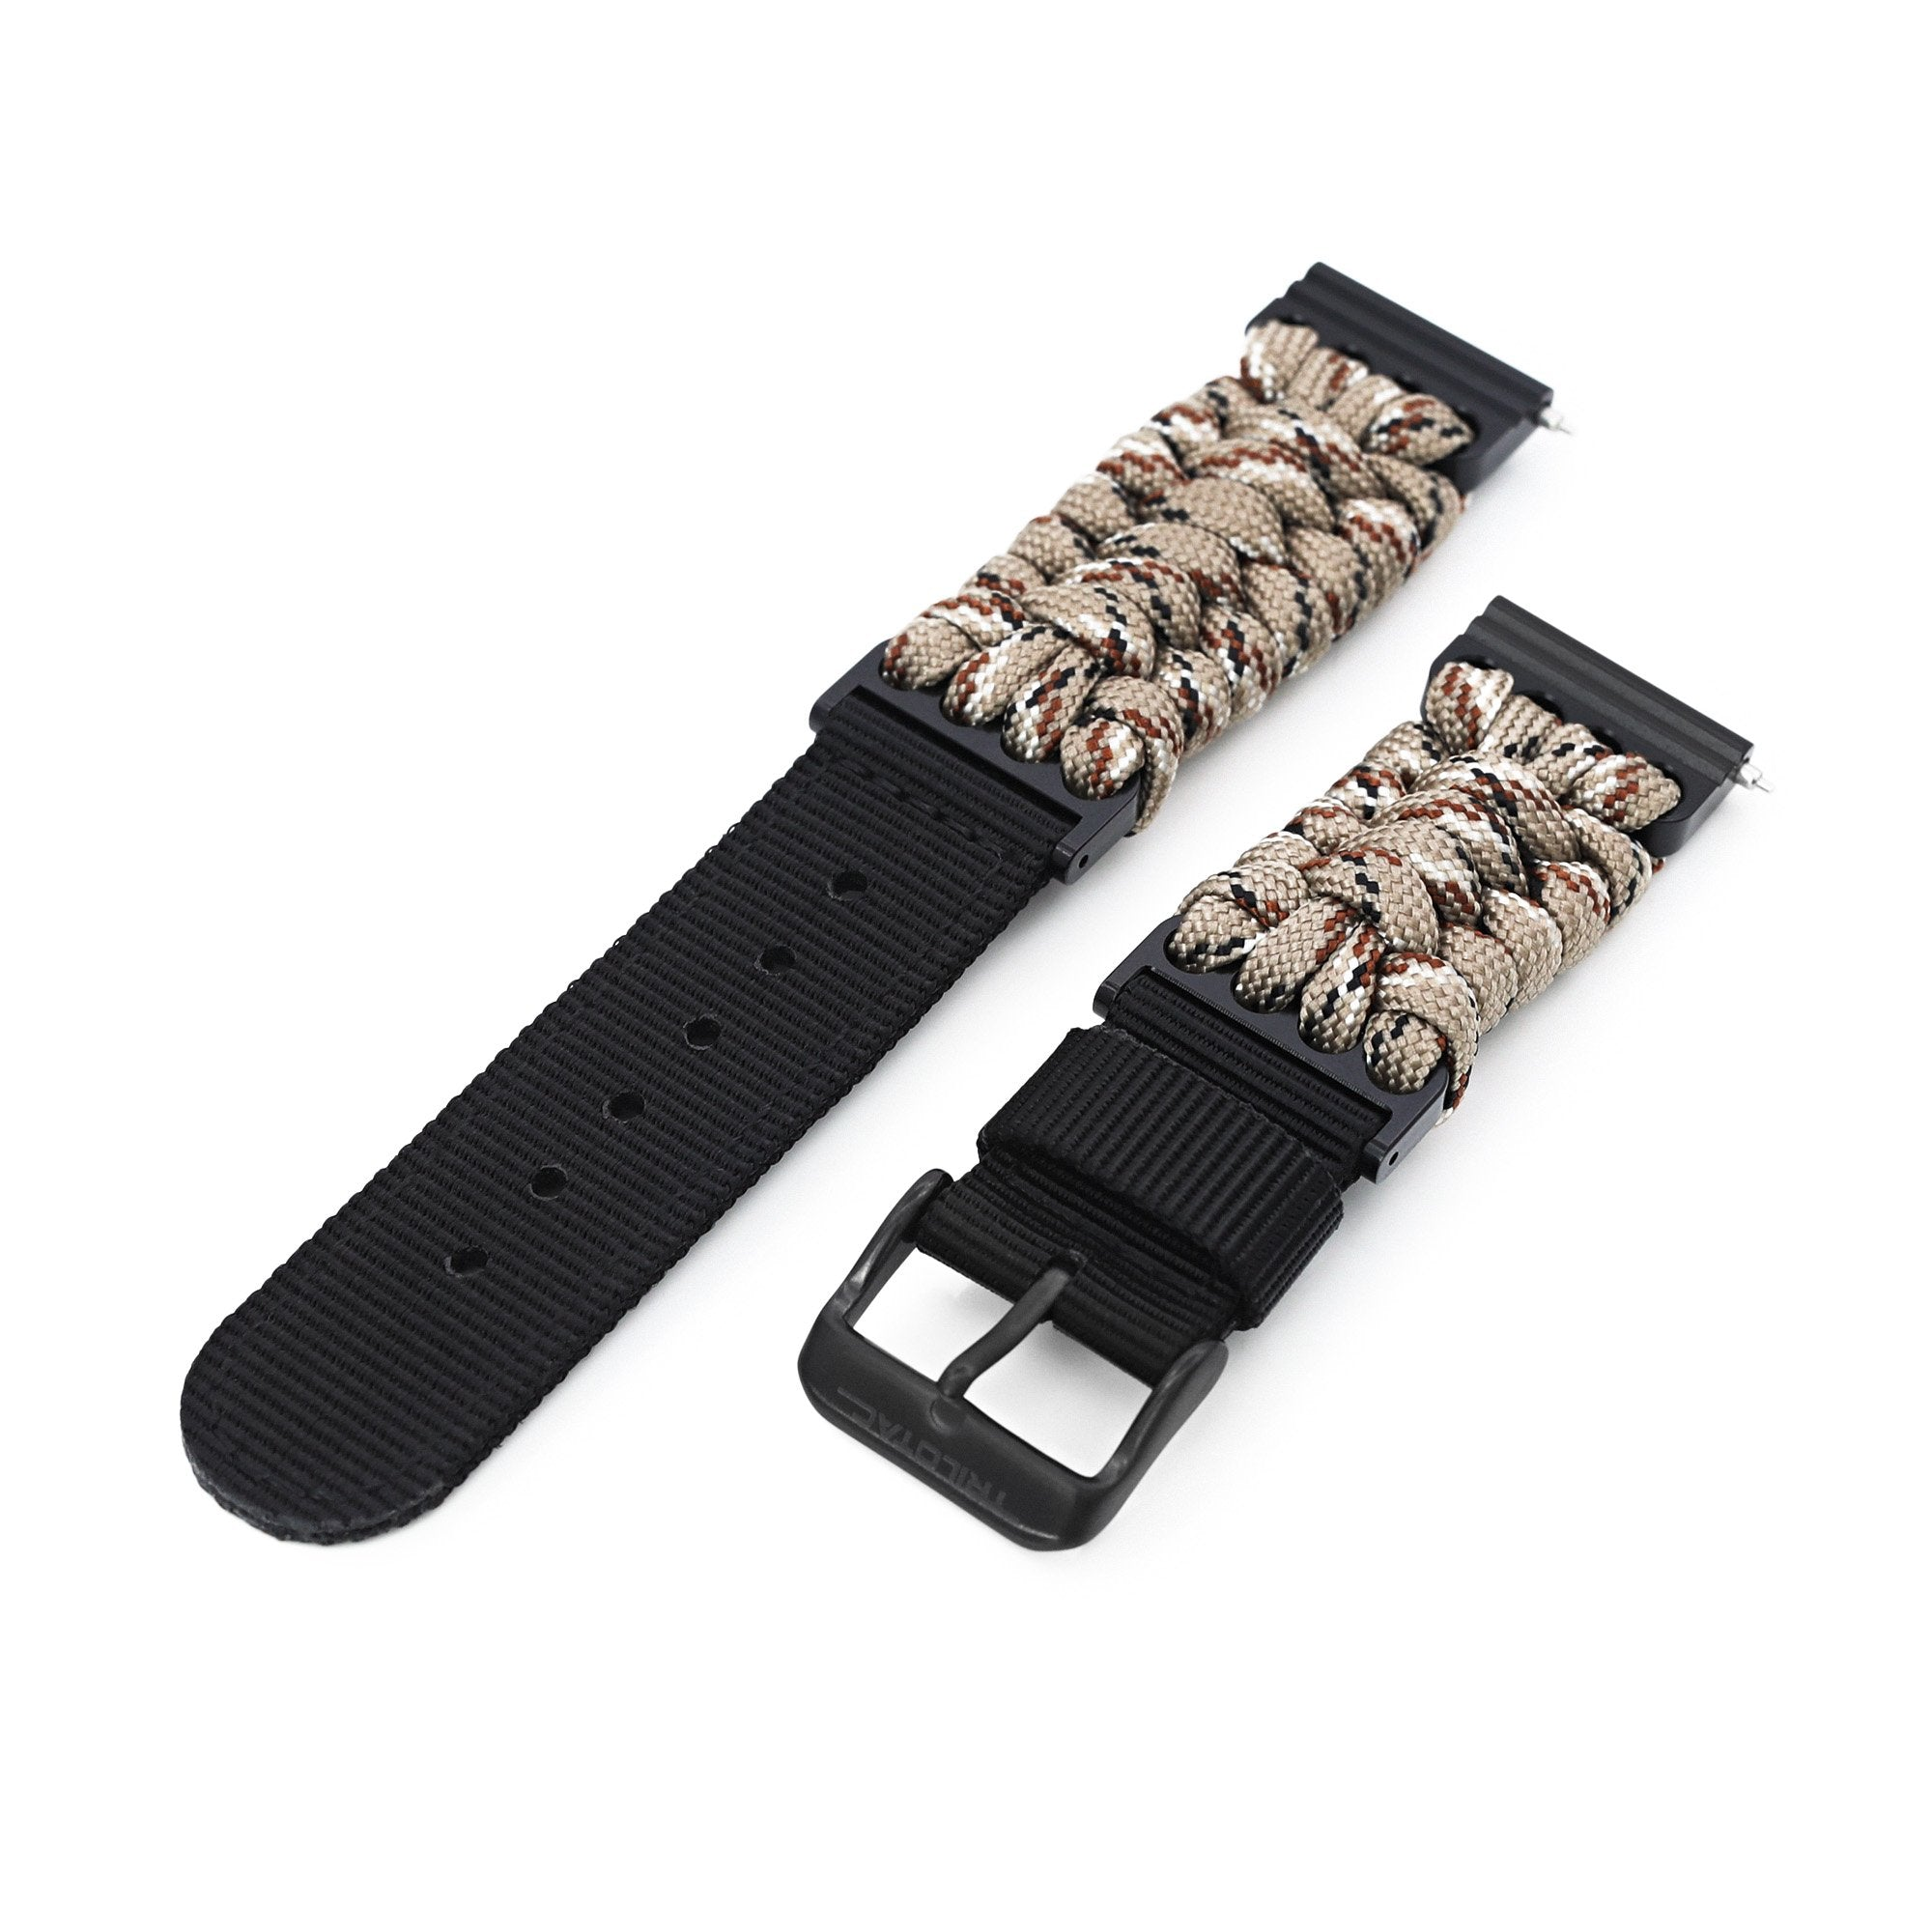 Quick Release 22mm G10 Hybrid Paracord watch Band, Desert Camo Strapcode Watch Bands